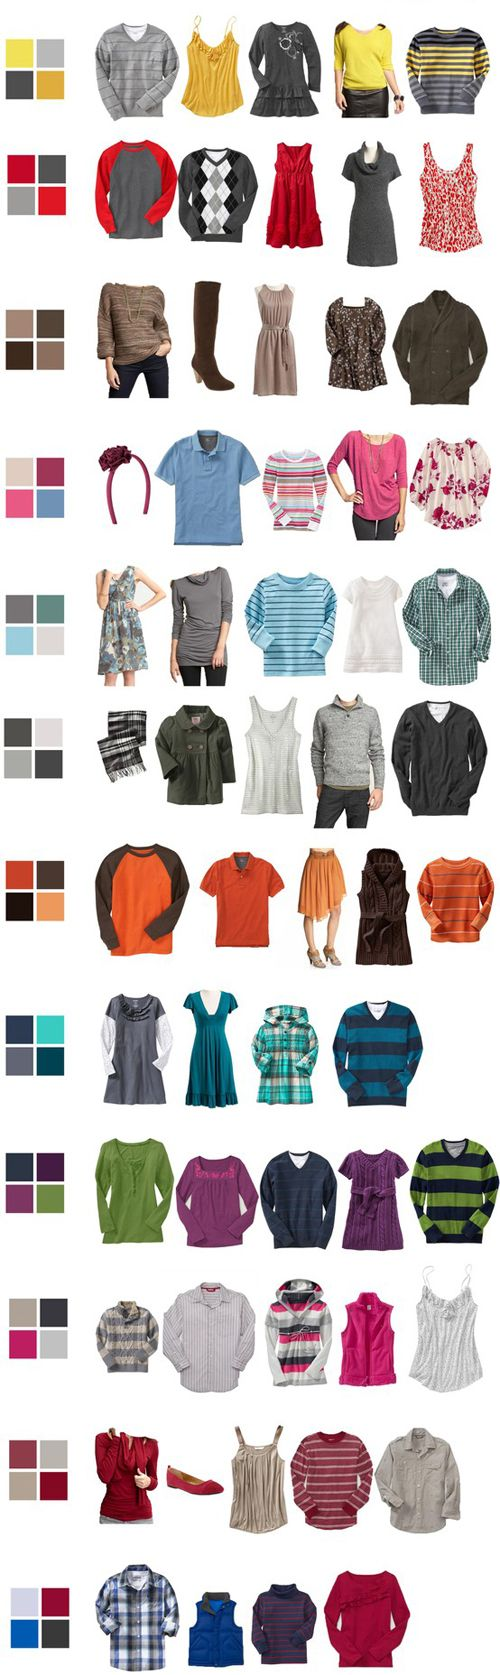 engagement-session-wardrobe-color-options.JPG